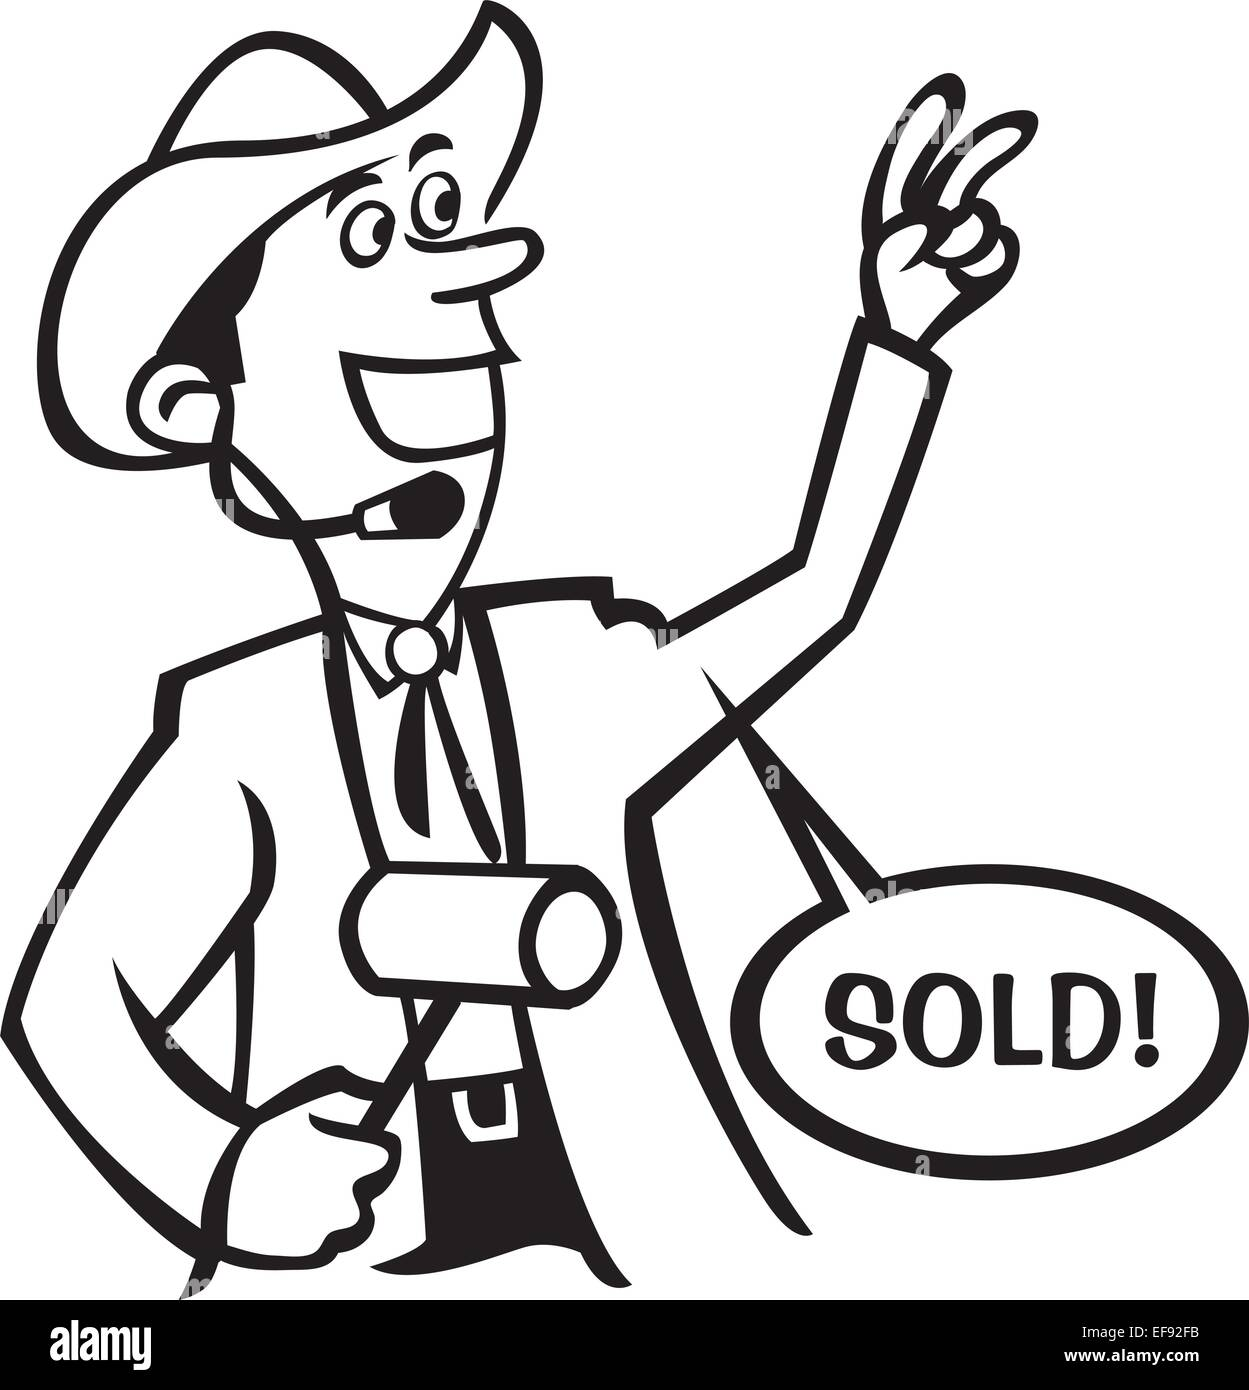 2011 12 01 archive as well Stock Photo An Auctioneer Holding A Mallet And Saying Sold  78260879 besides Stress Des Nuits Bebe likewise D2VzdGVybiBjb3dib3kgYW5pbWU additionally 4145 Mexican Fiesta Folkart Invitation. on old cartoon cowboys